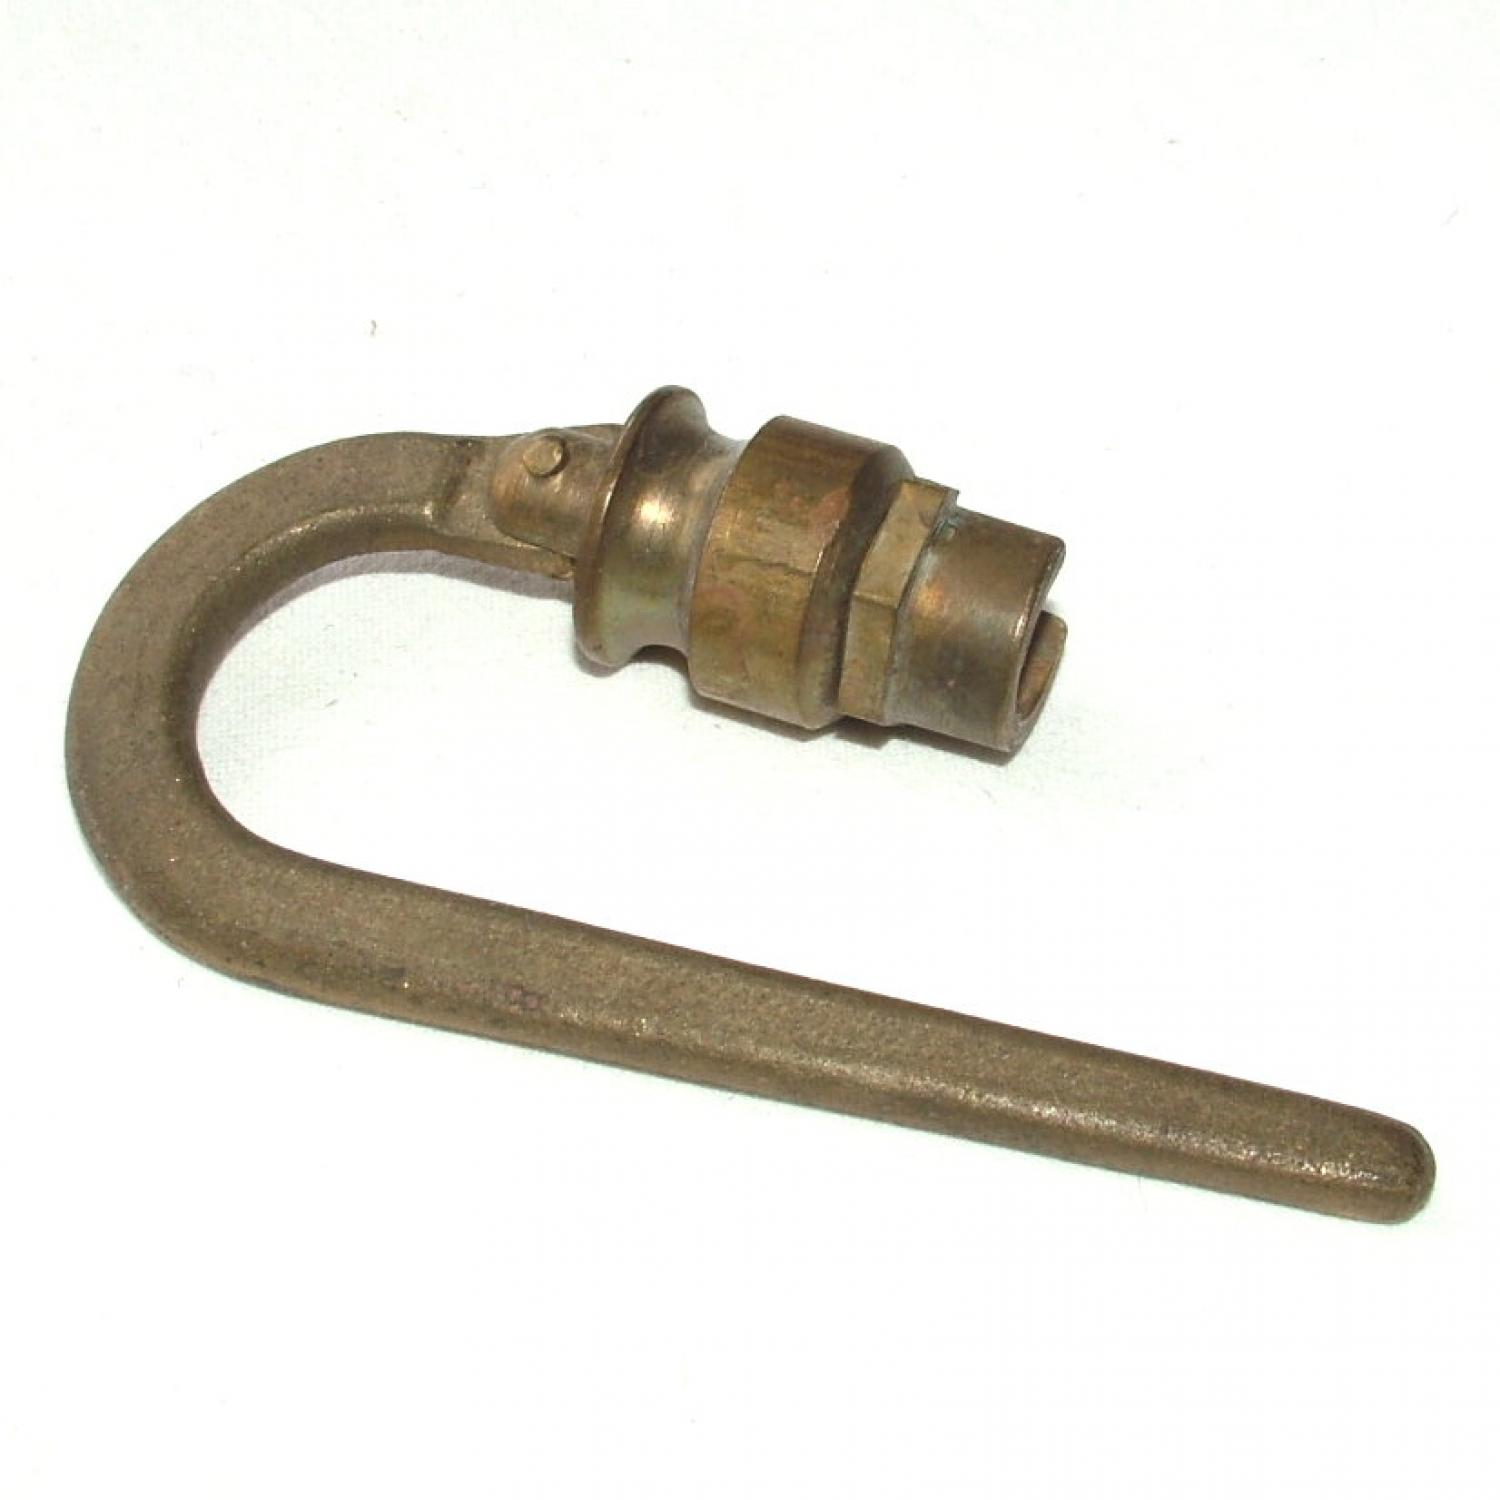 RAF 1941 Pattern Mae West Inflation Lever